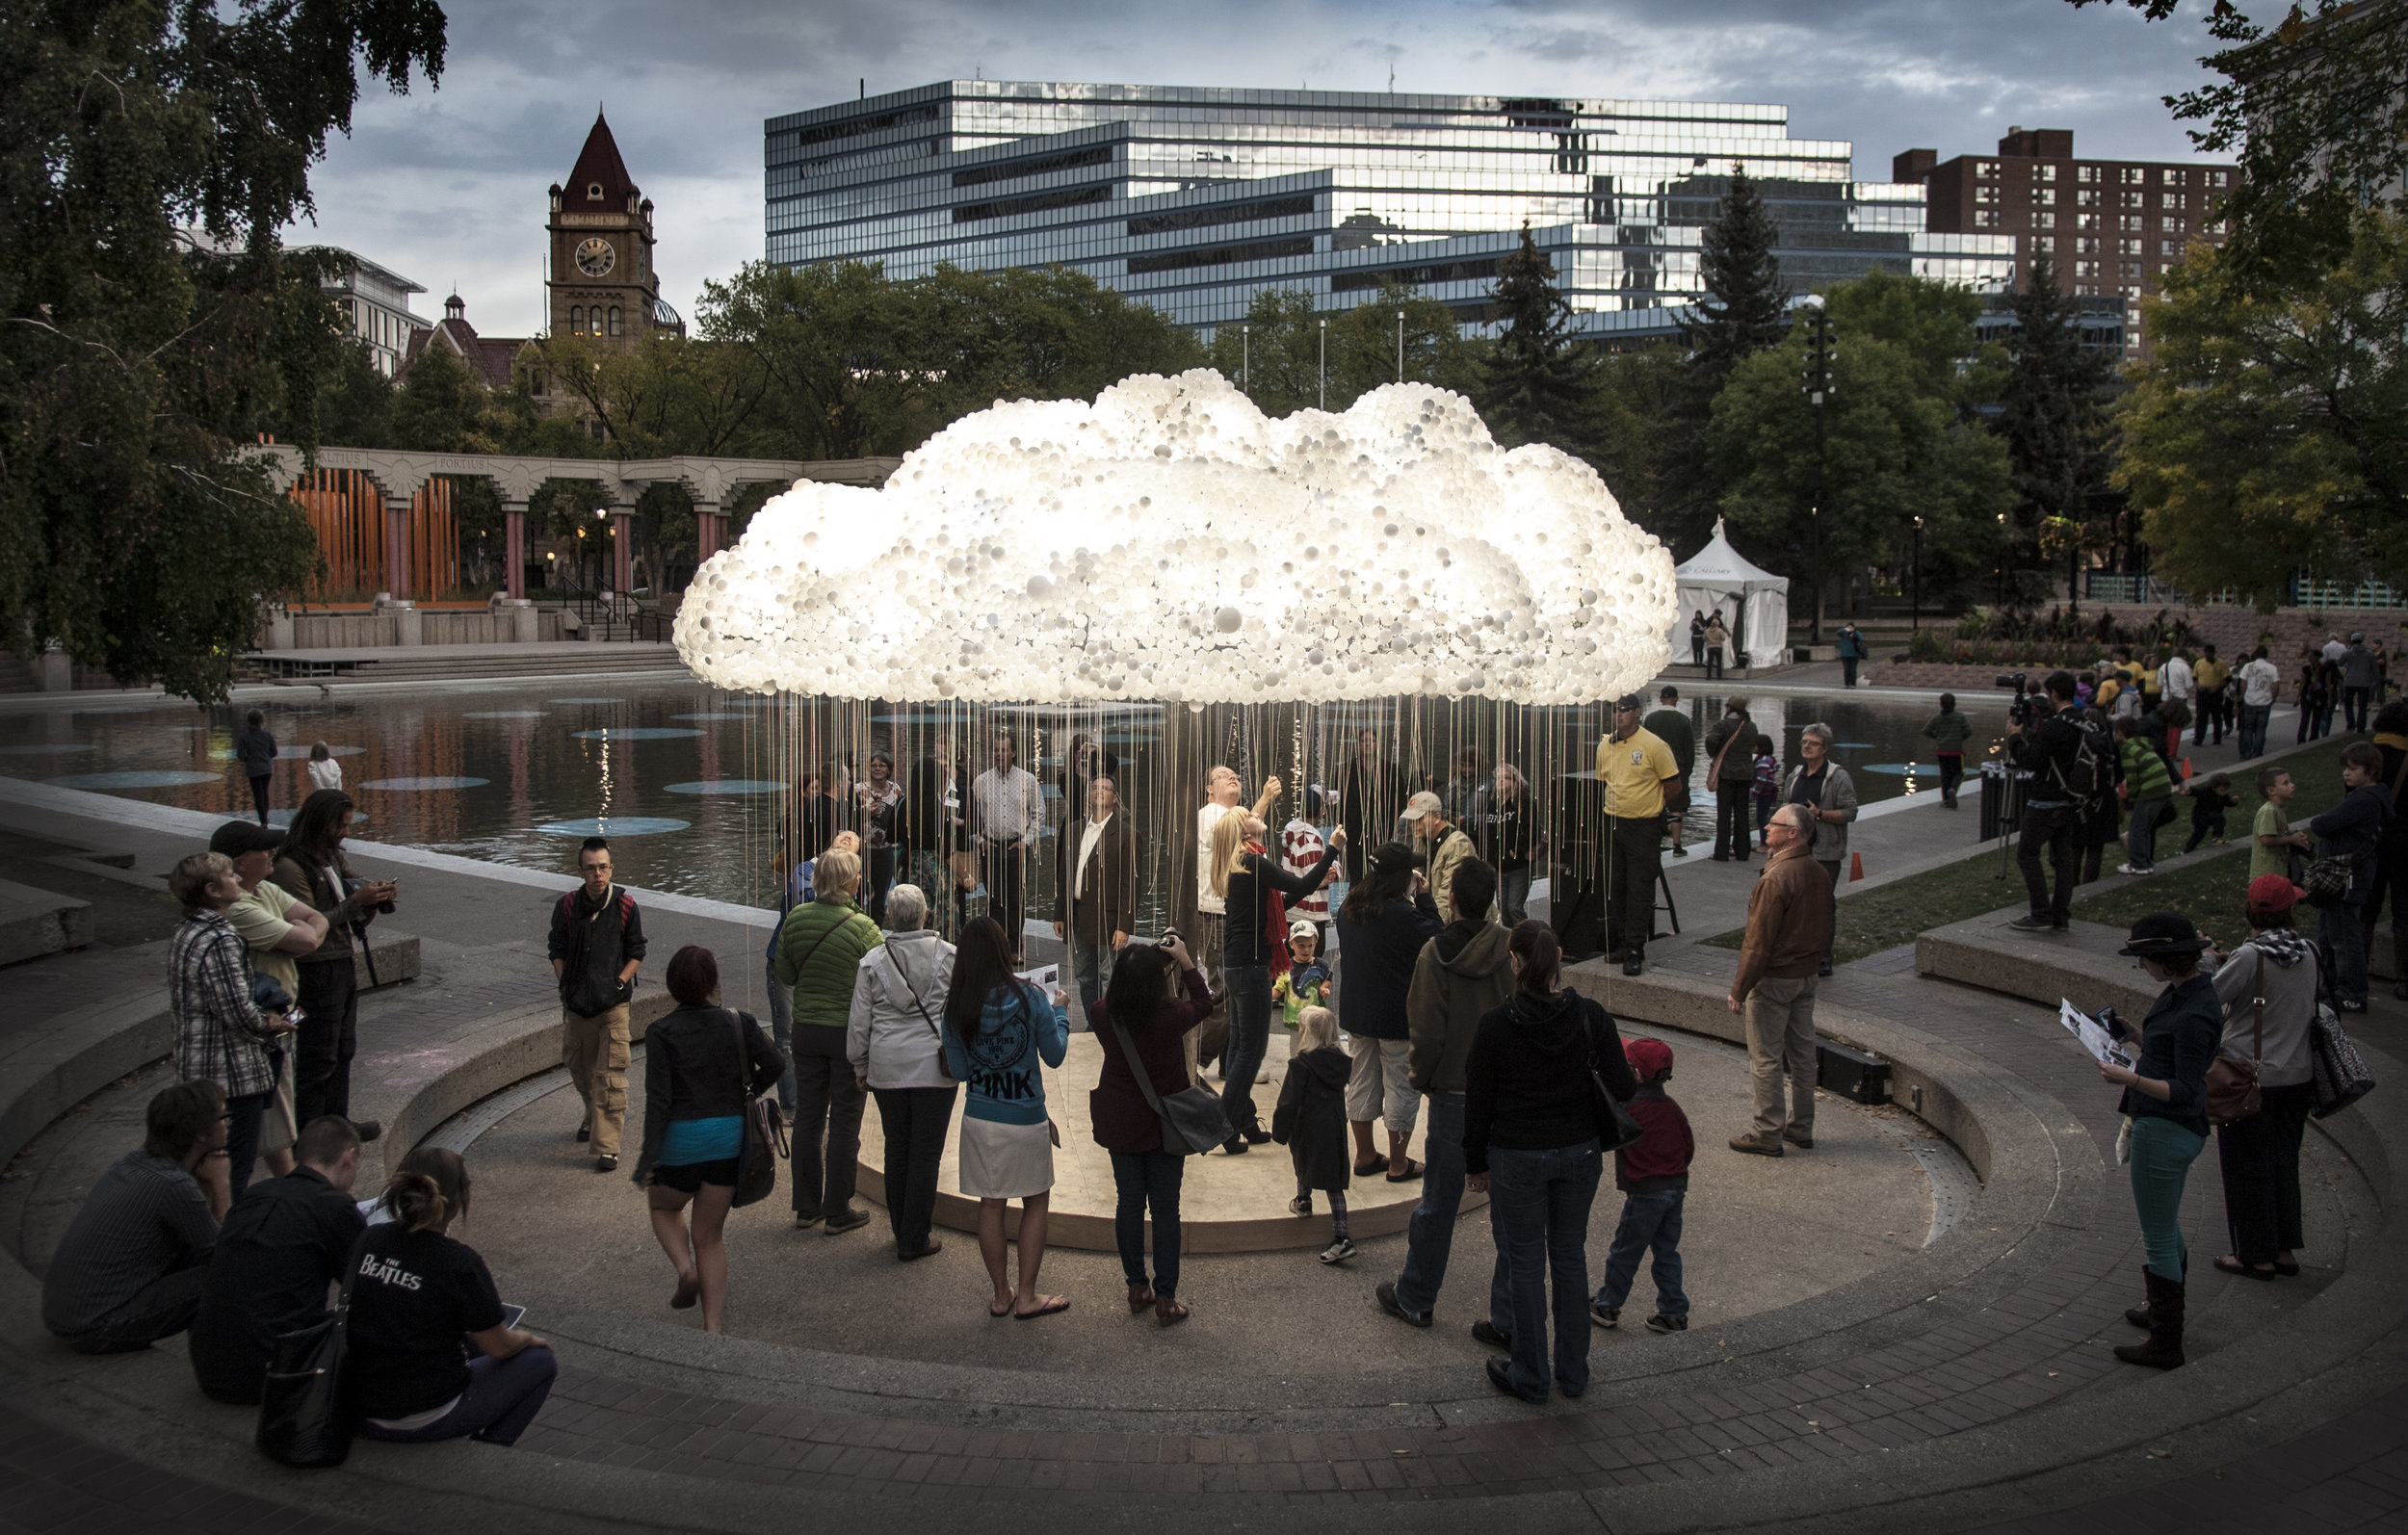 Original CLOUD sculpture by Caitlind r.c. Brown and Wayne Garrett.  Photo Credit: Mitch Kern.